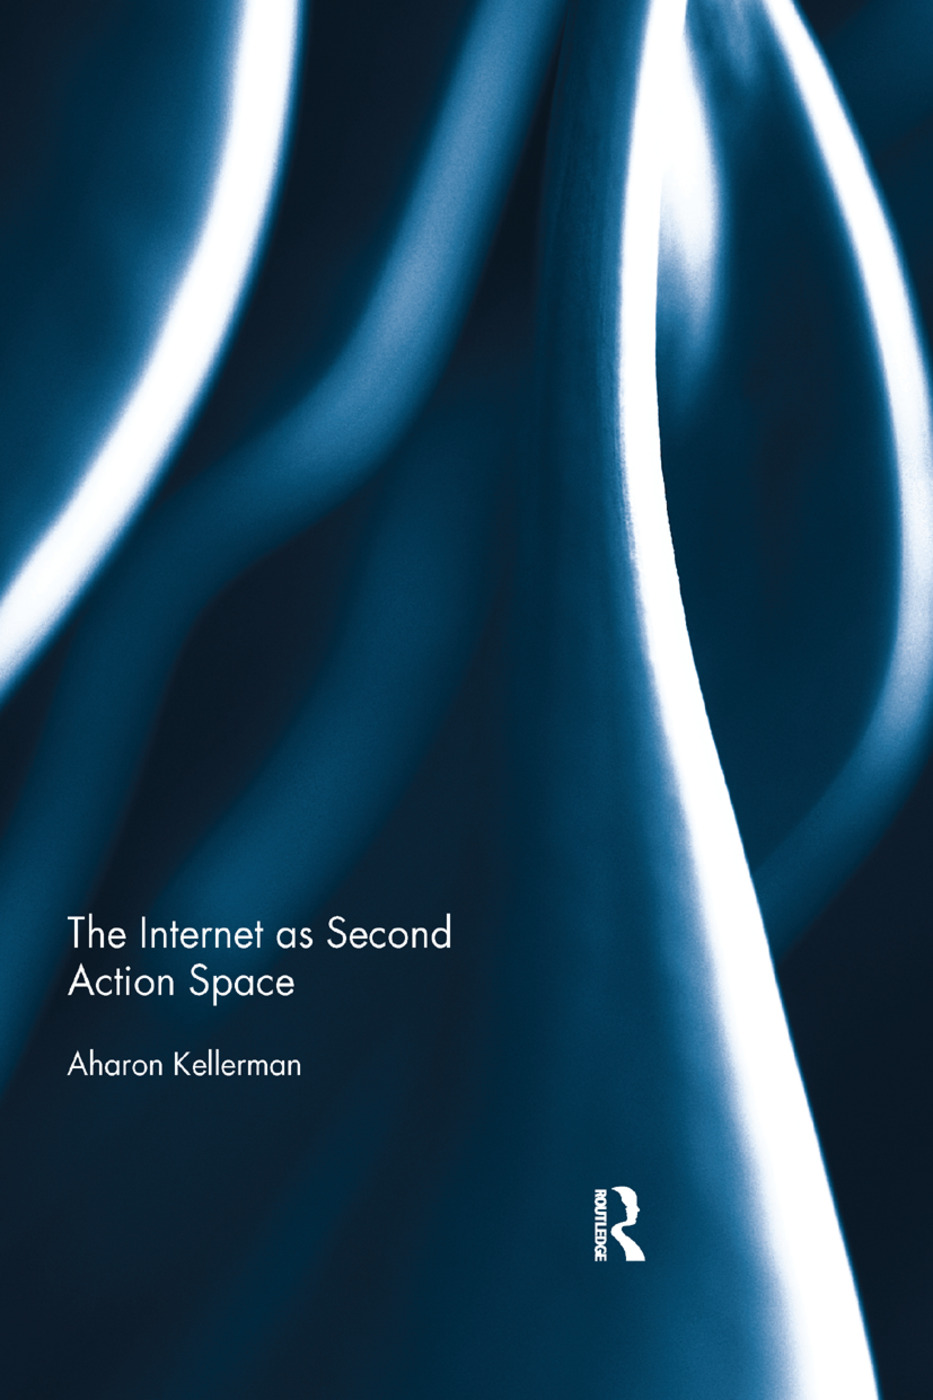 The Internet as Second Action Space